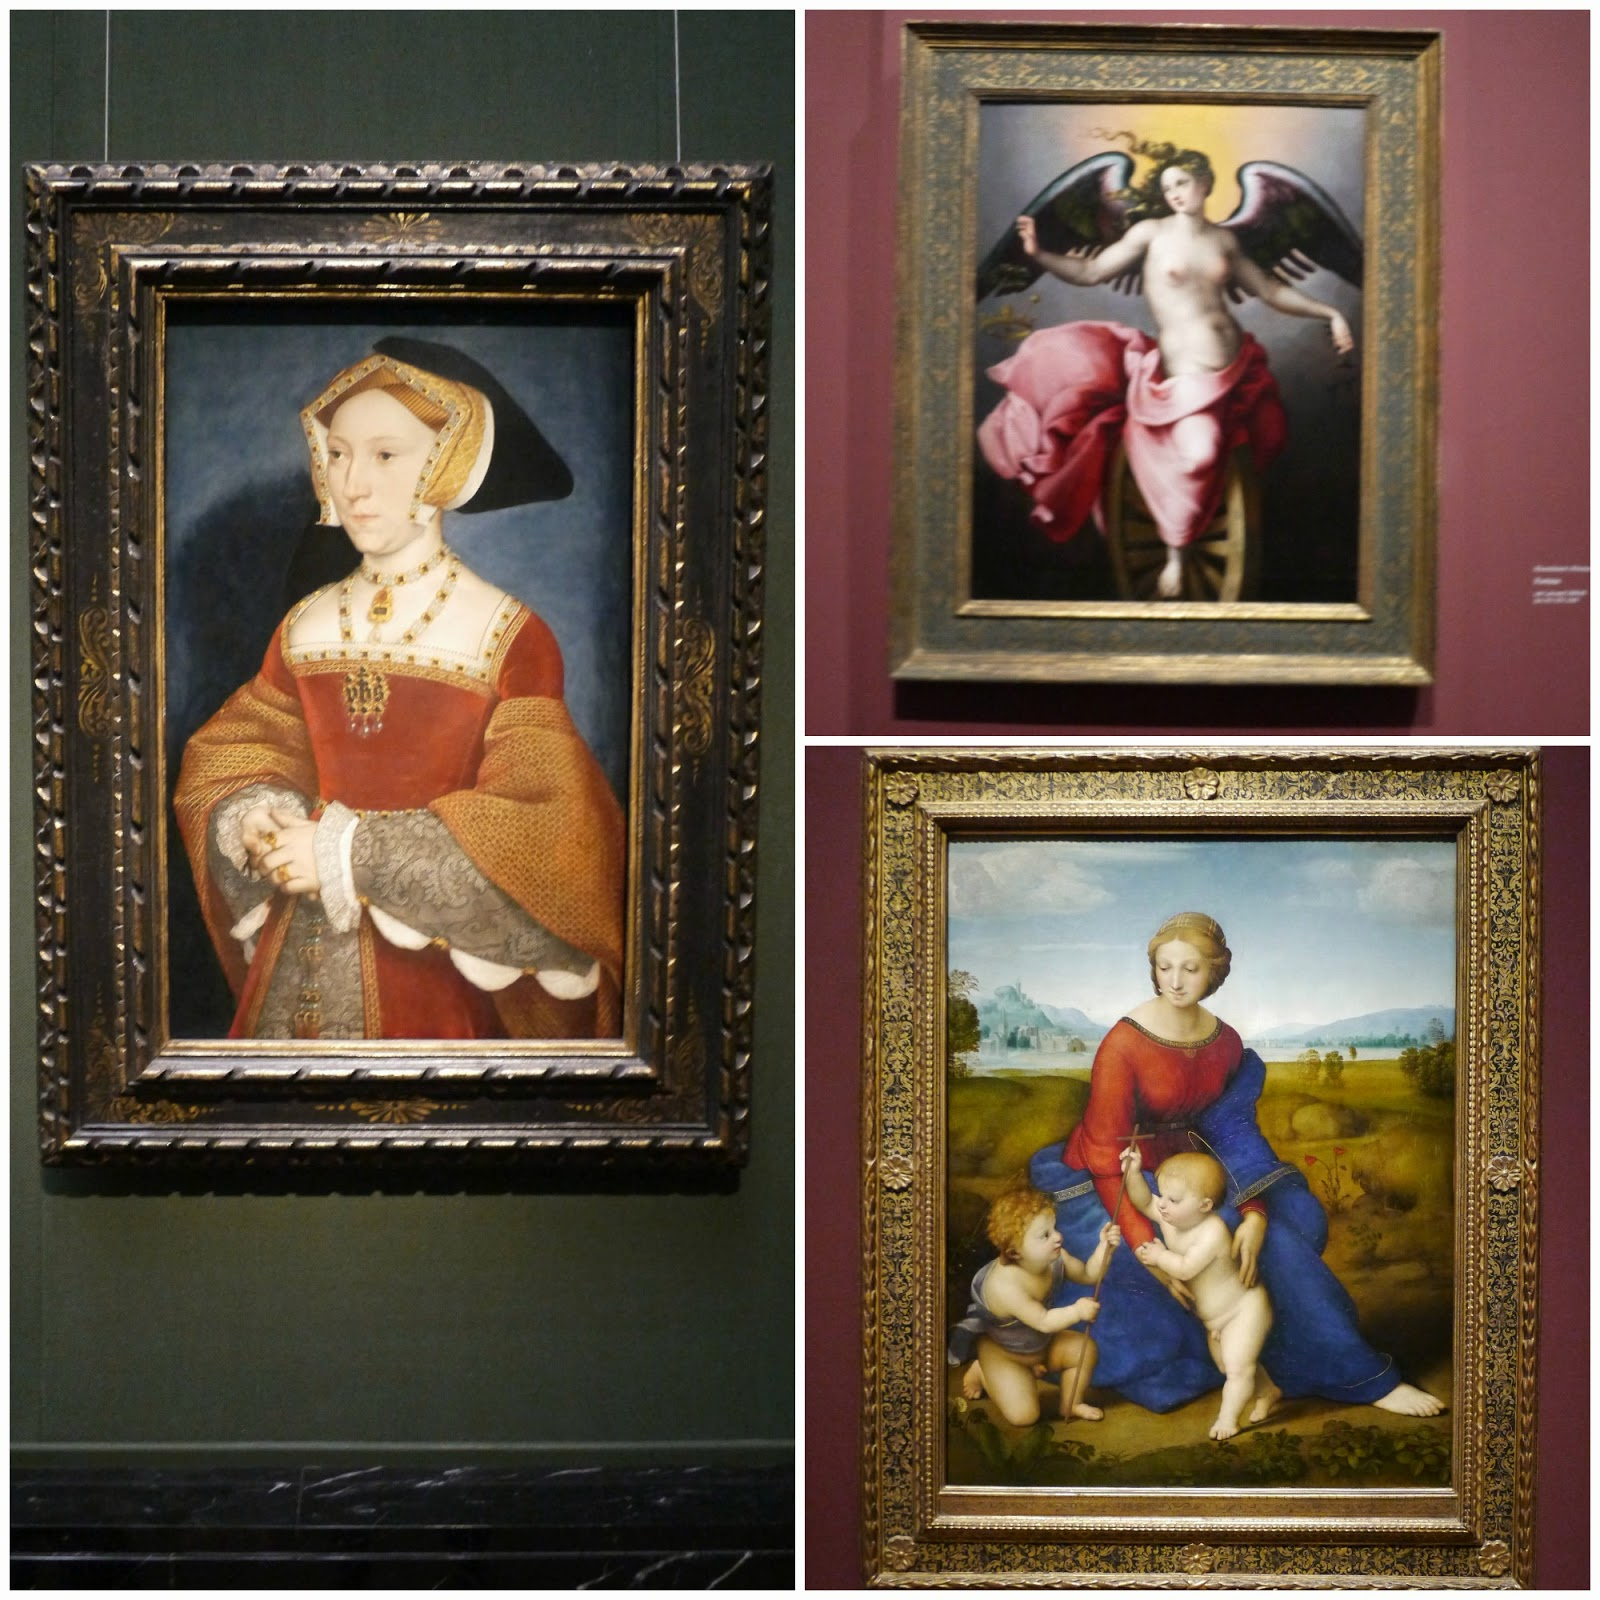 Kunsthistorisches holbein raphael and michelangelo paintings